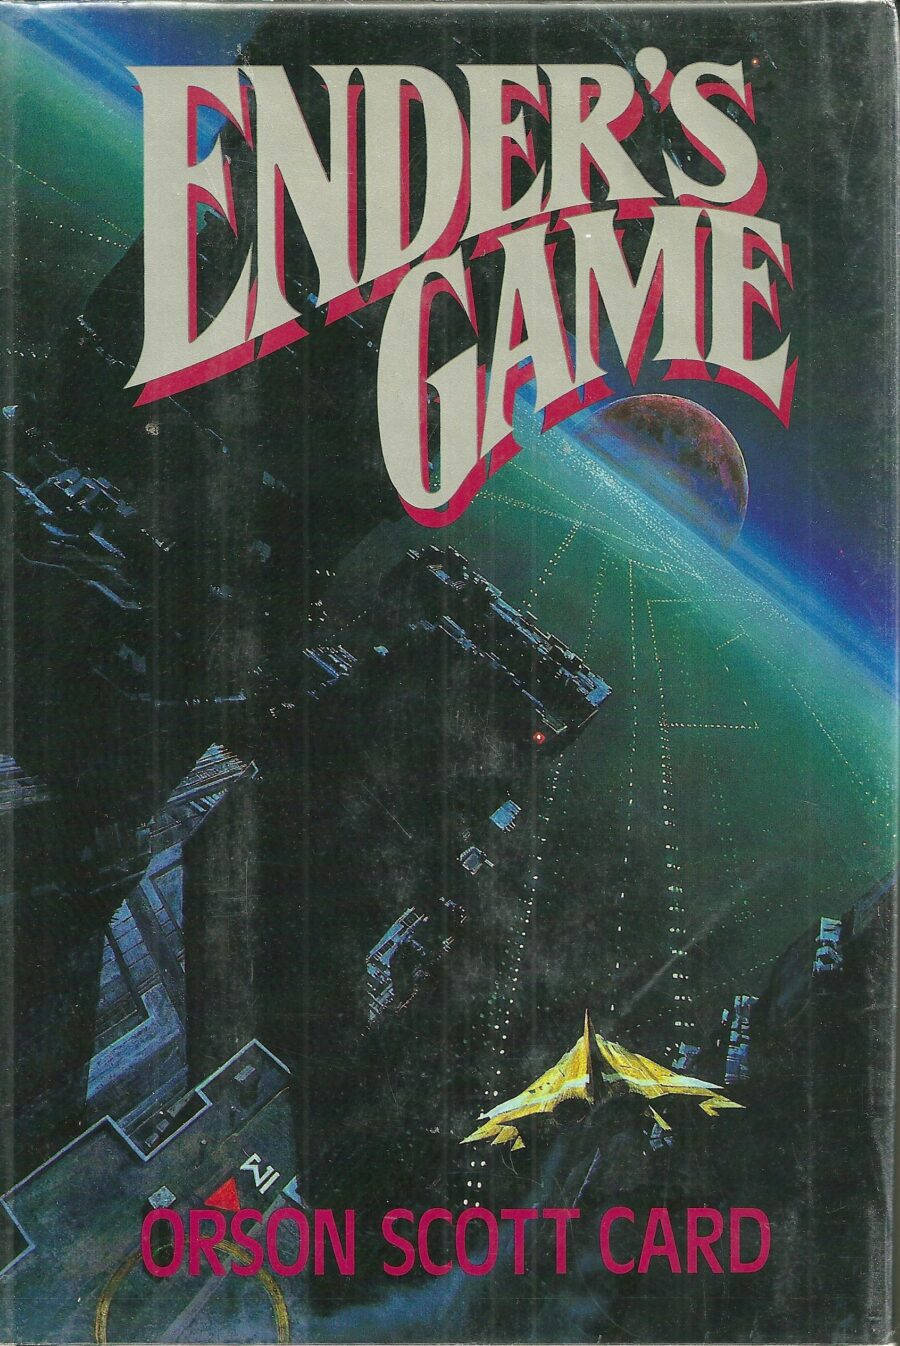 Ender's Game sci-fi book